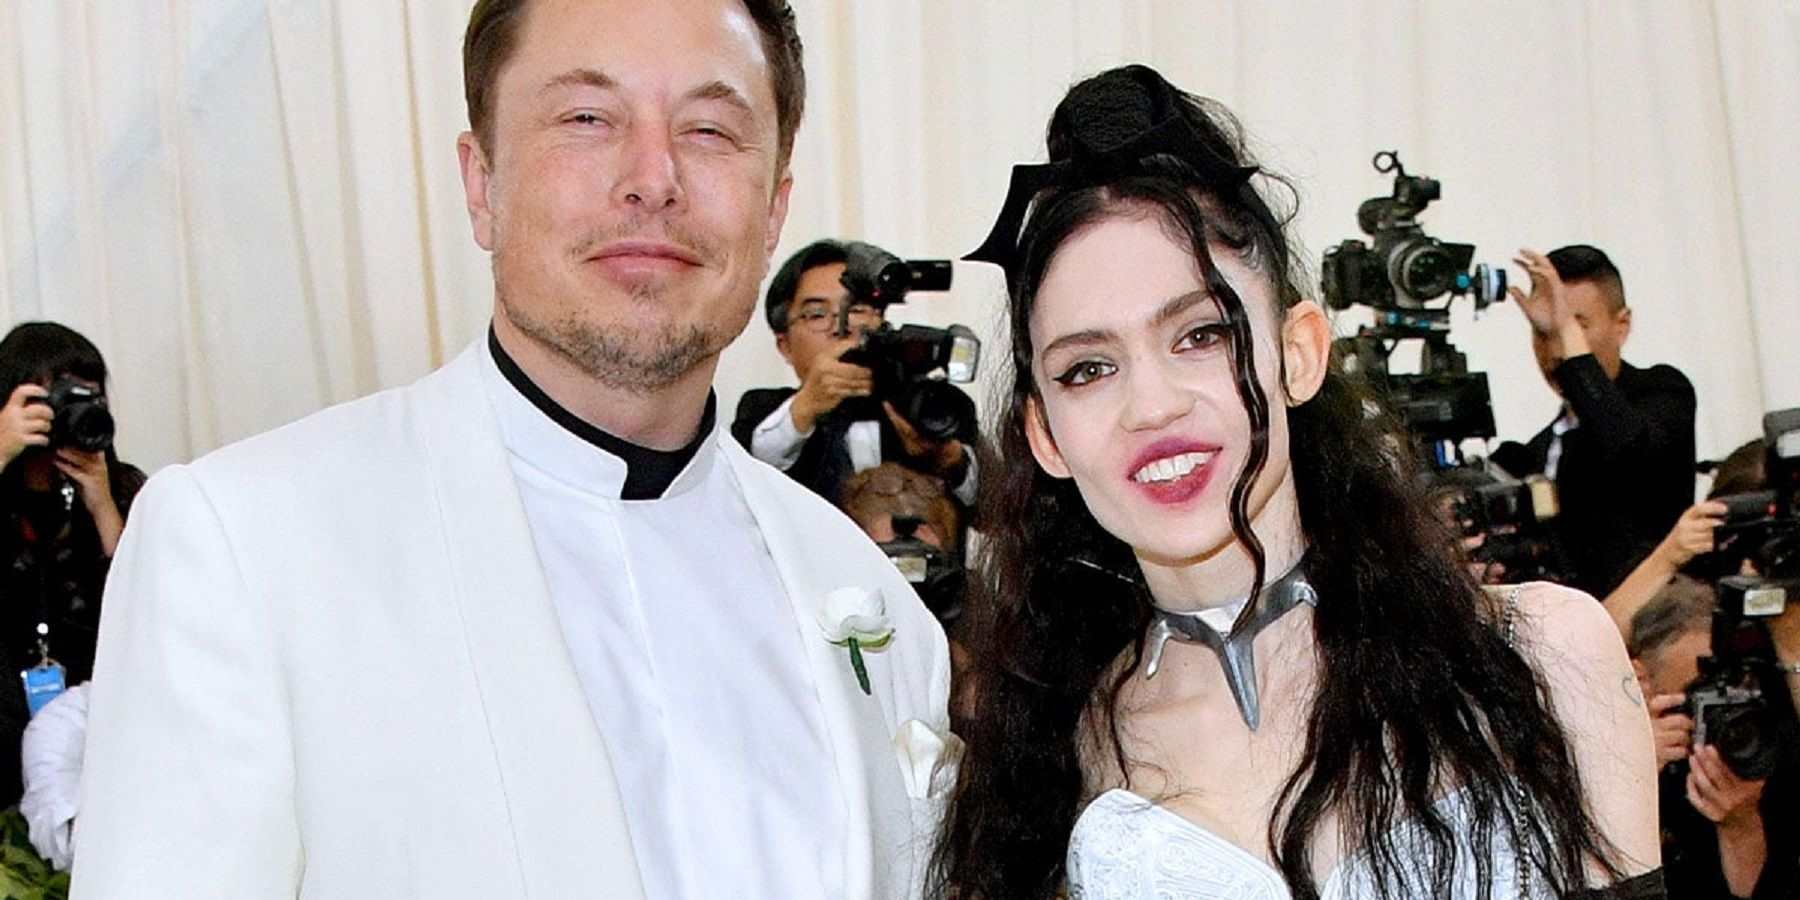 Elon Musk and Grimes Have Broken Up